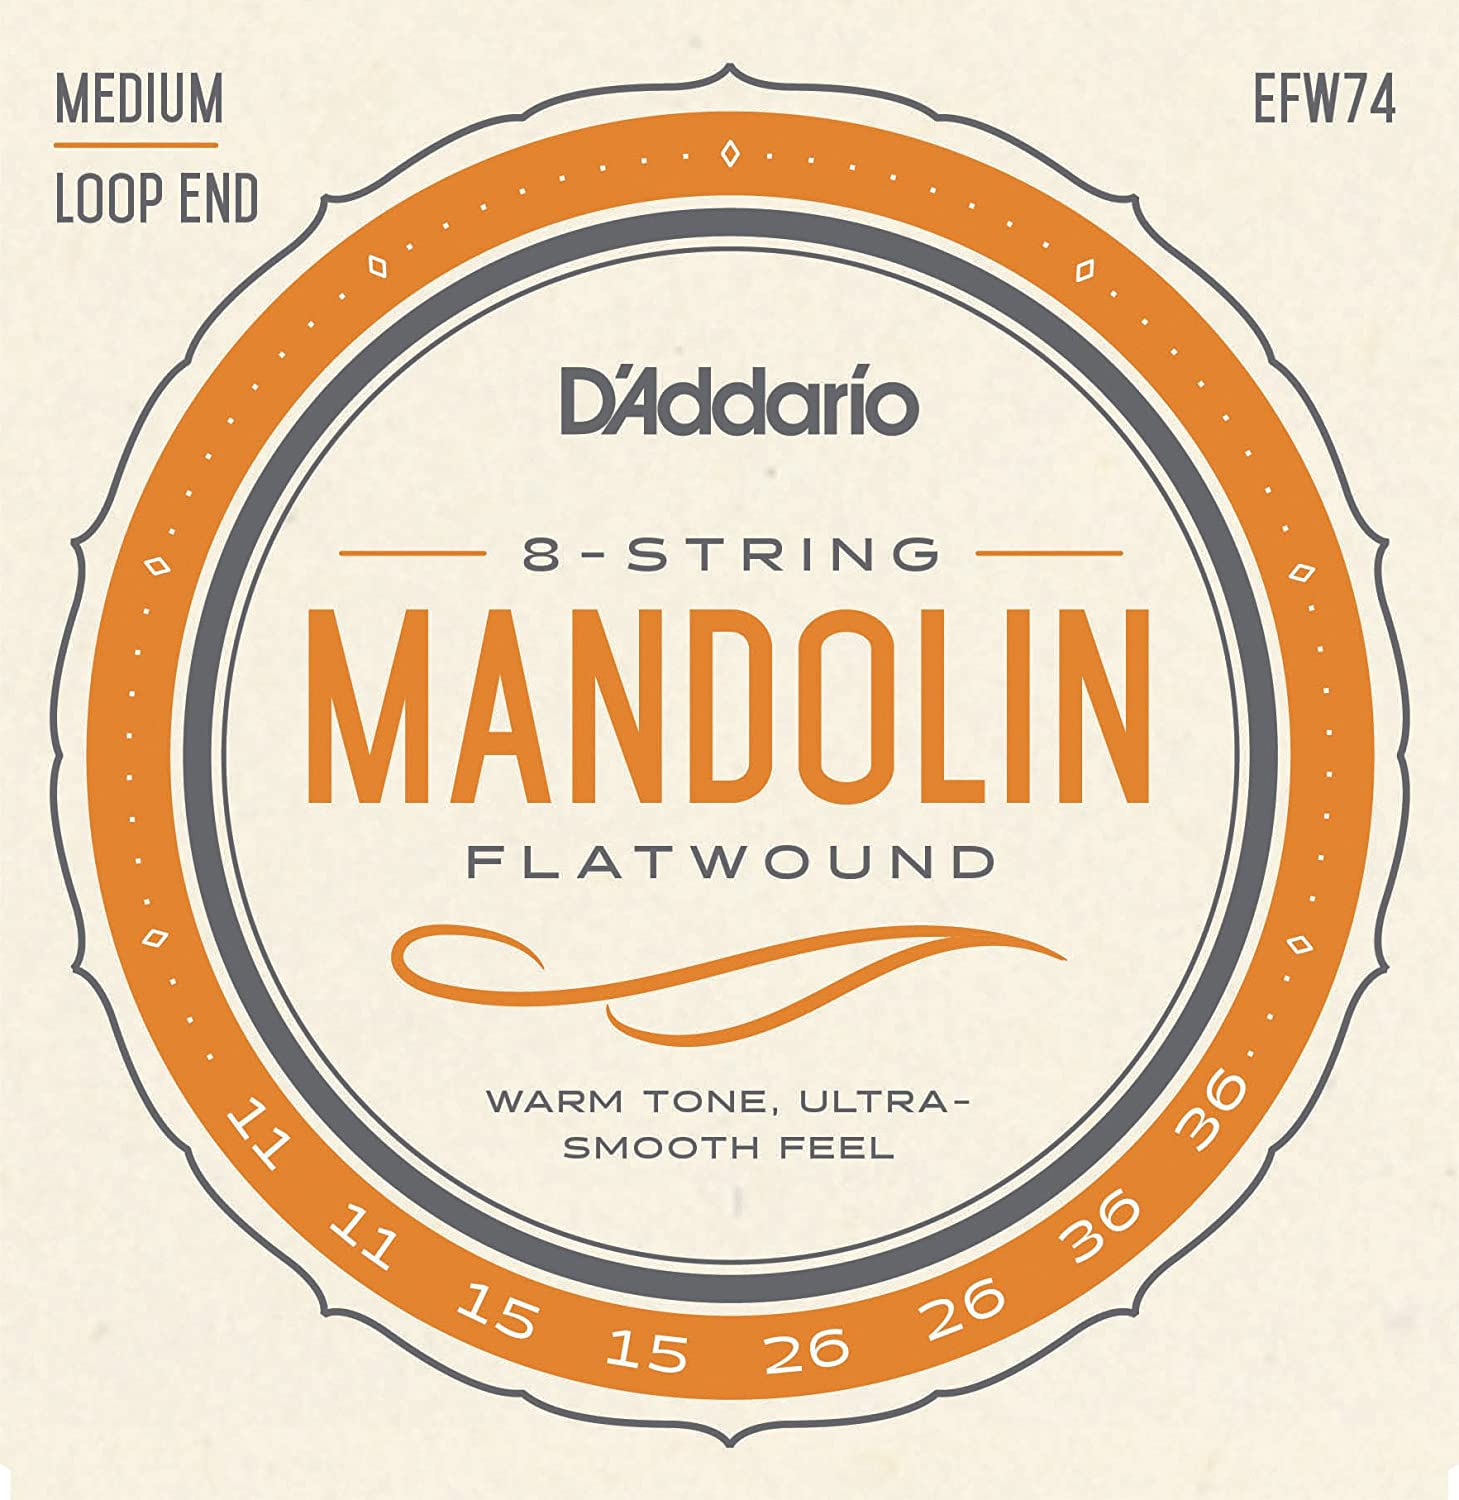 D'Addario EFW74 Phosphor Bronze Flatwound Mandolin Strings, Medium, 11-36 D'Addario &Co. Inc